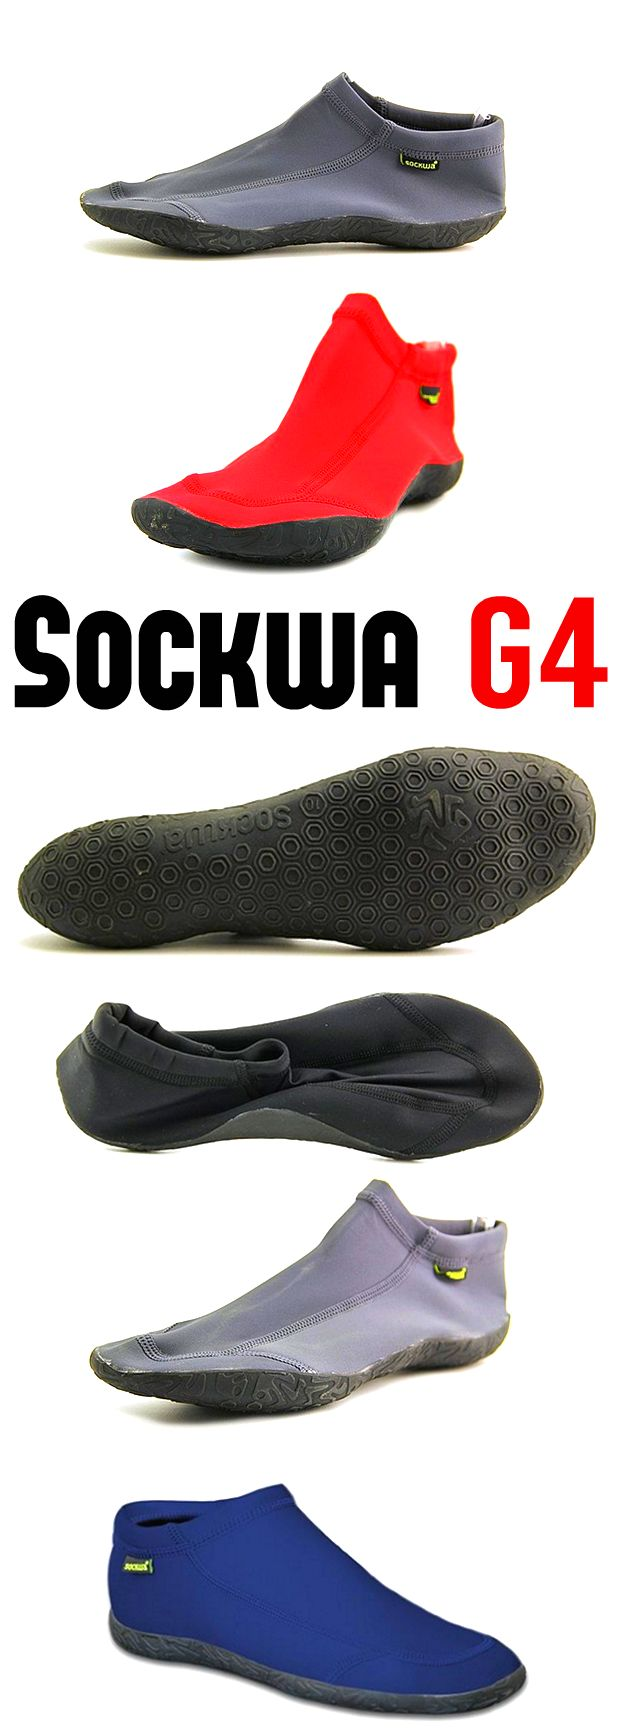 Sockwa G4 Review - Great winter running shoe